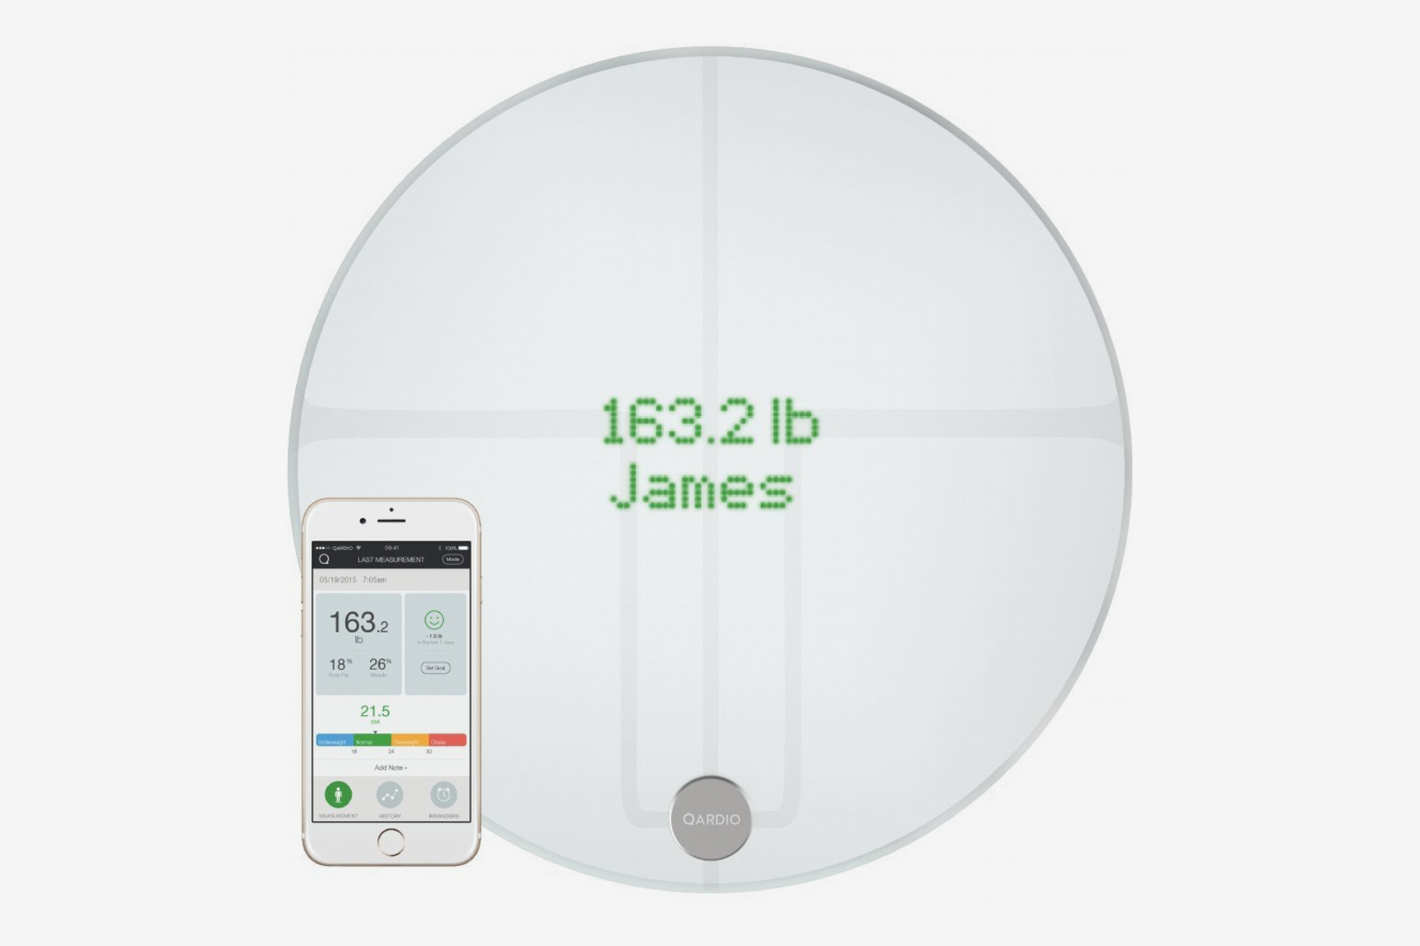 QardioBase2 WiFi Smart Scale and Body Analyzer